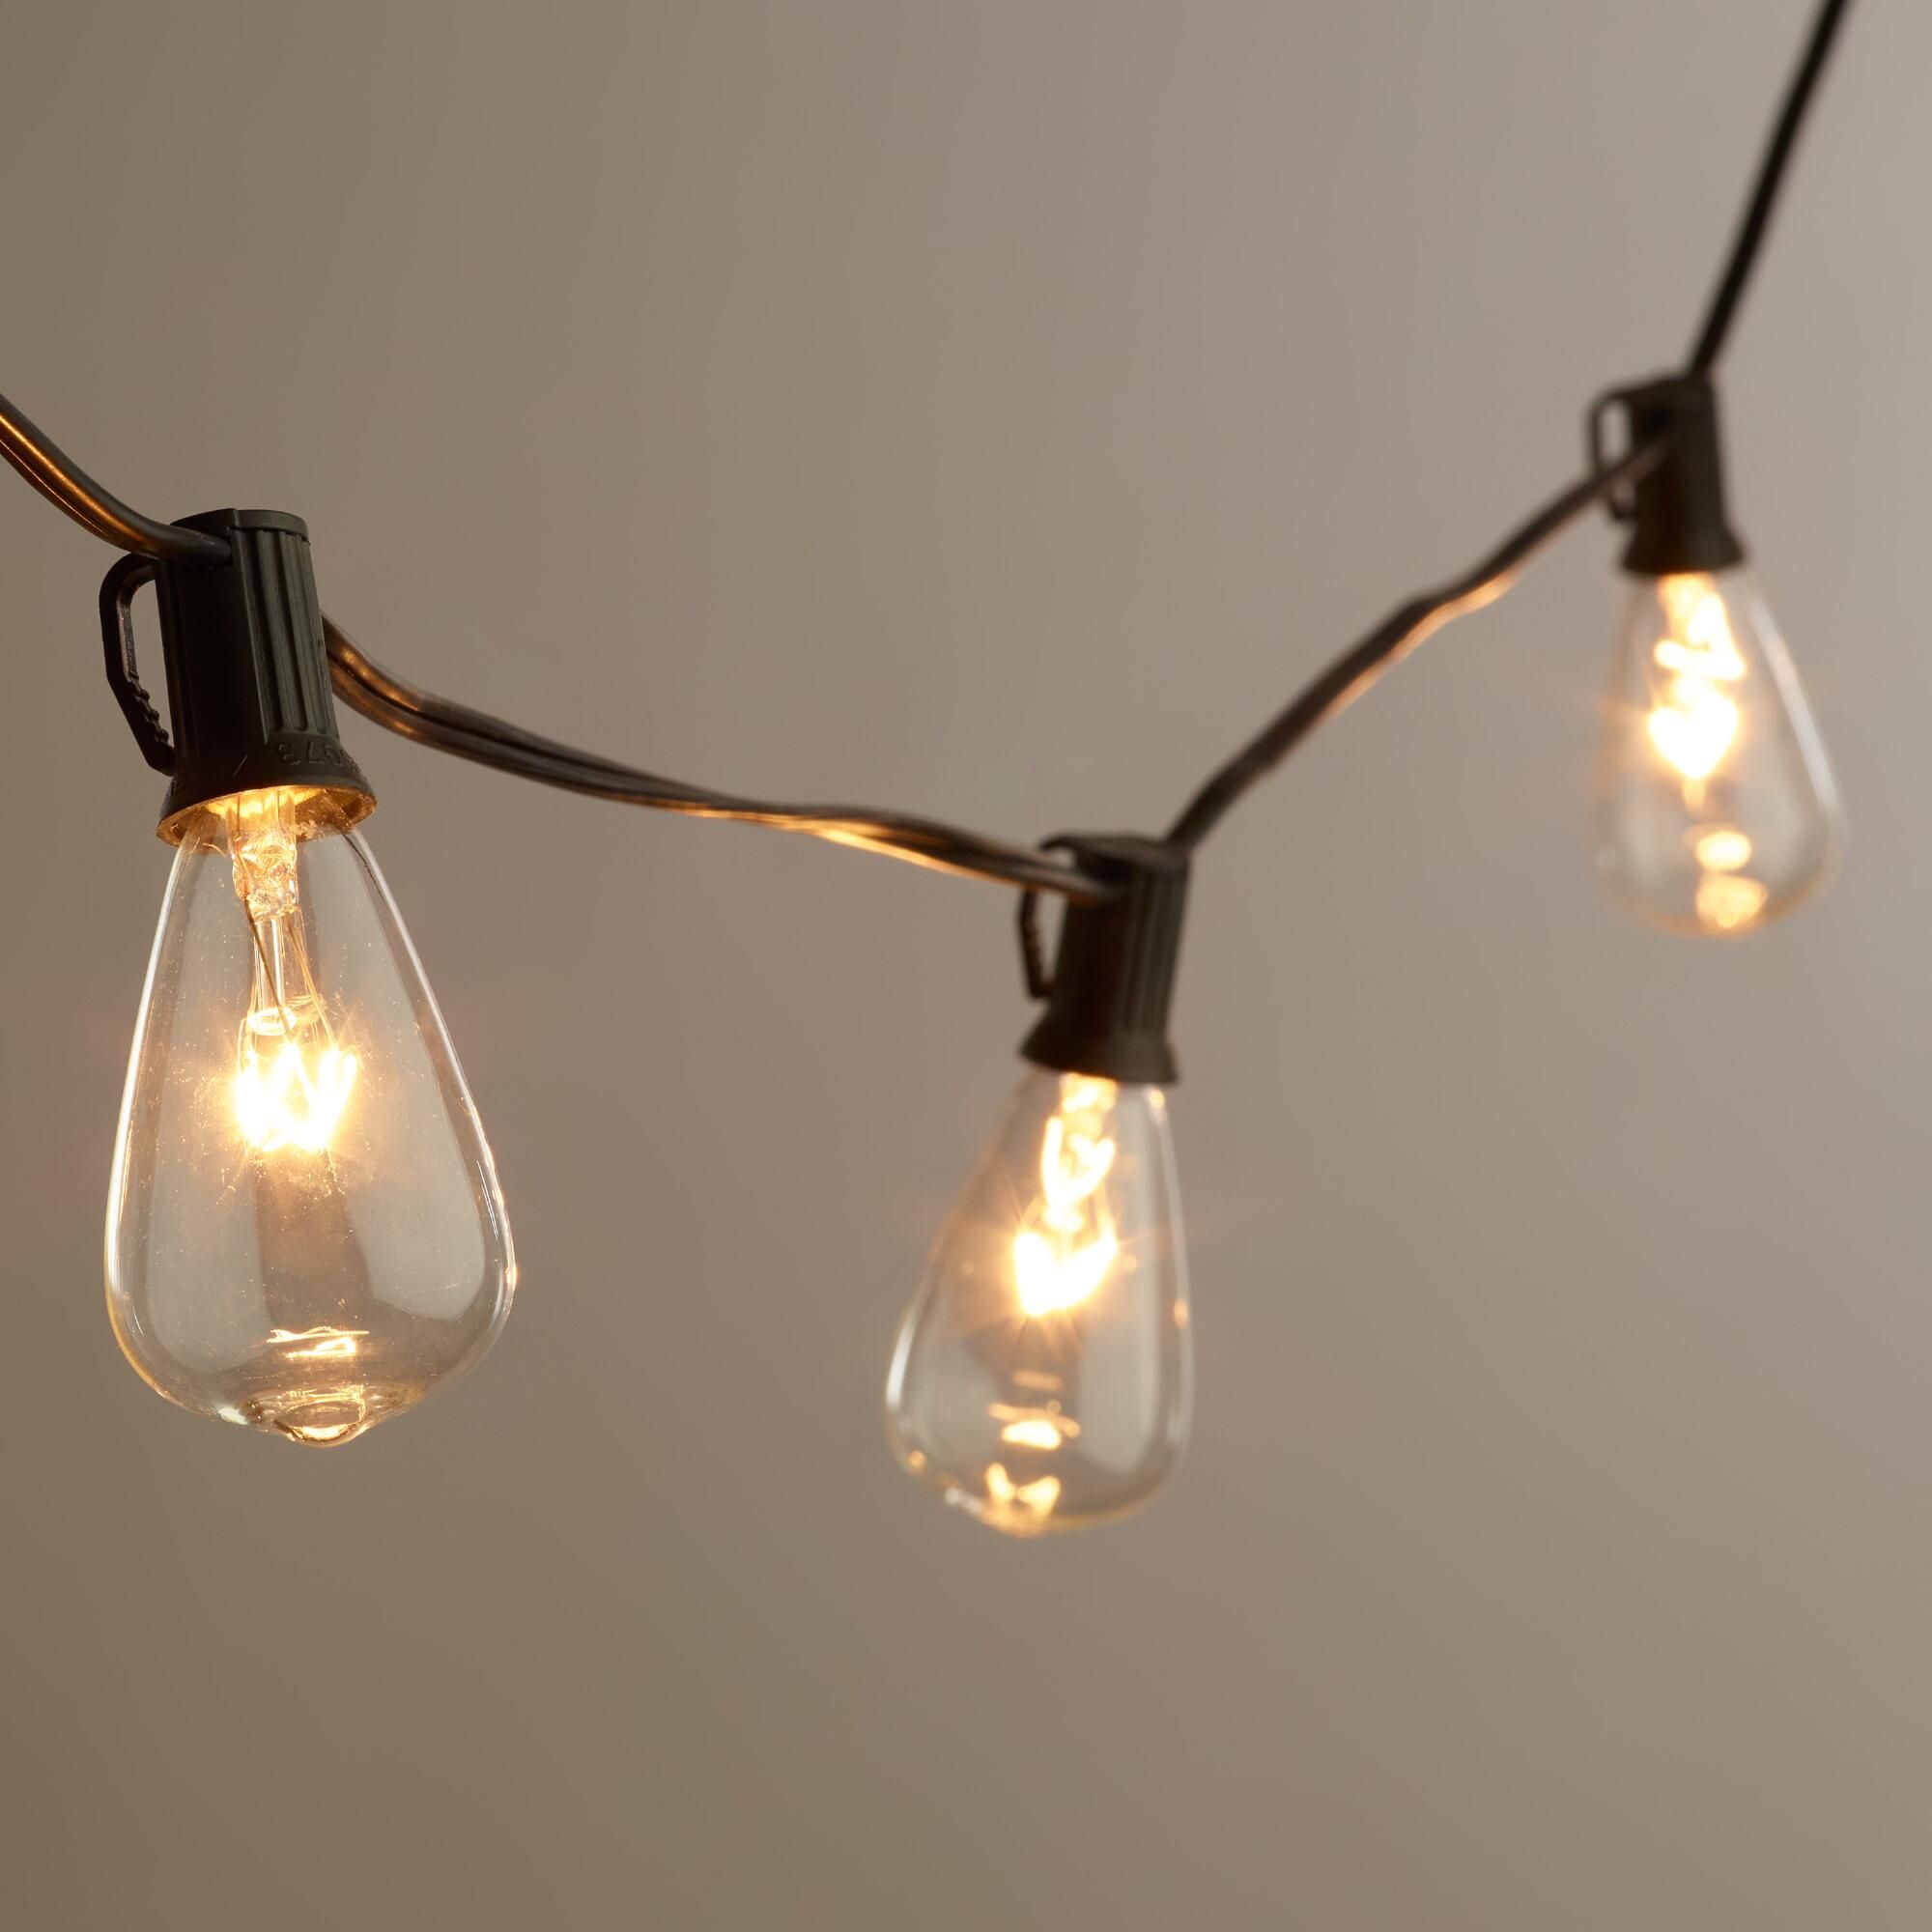 Light Bulbs On A String Captivating Inspiredthe Vintage Light Bulbs Inventedthomas Edison Our Design Inspiration